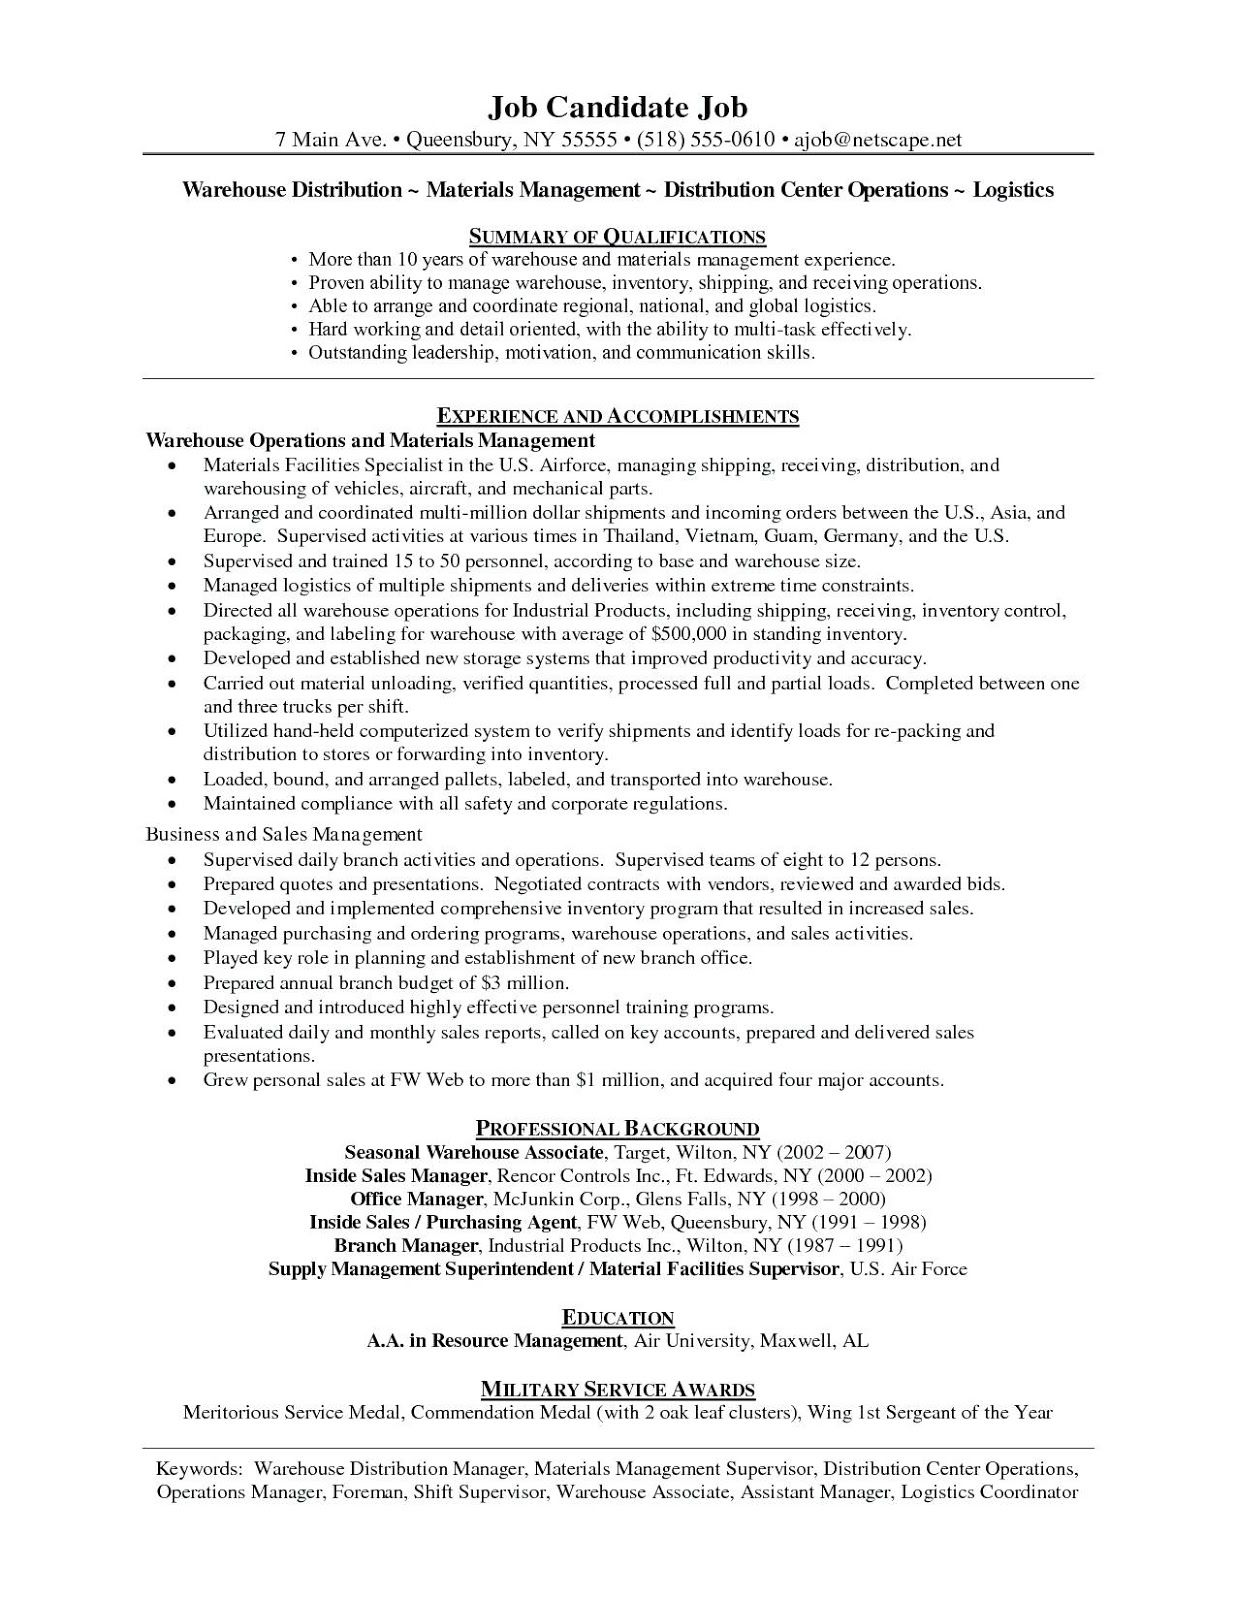 Benefits Manager Resume Summary 2019 Resume Cover Letter 2020 Benefits Manager Resume Ben Resume Objective Examples Job Resume Examples Cover Letter For Resume